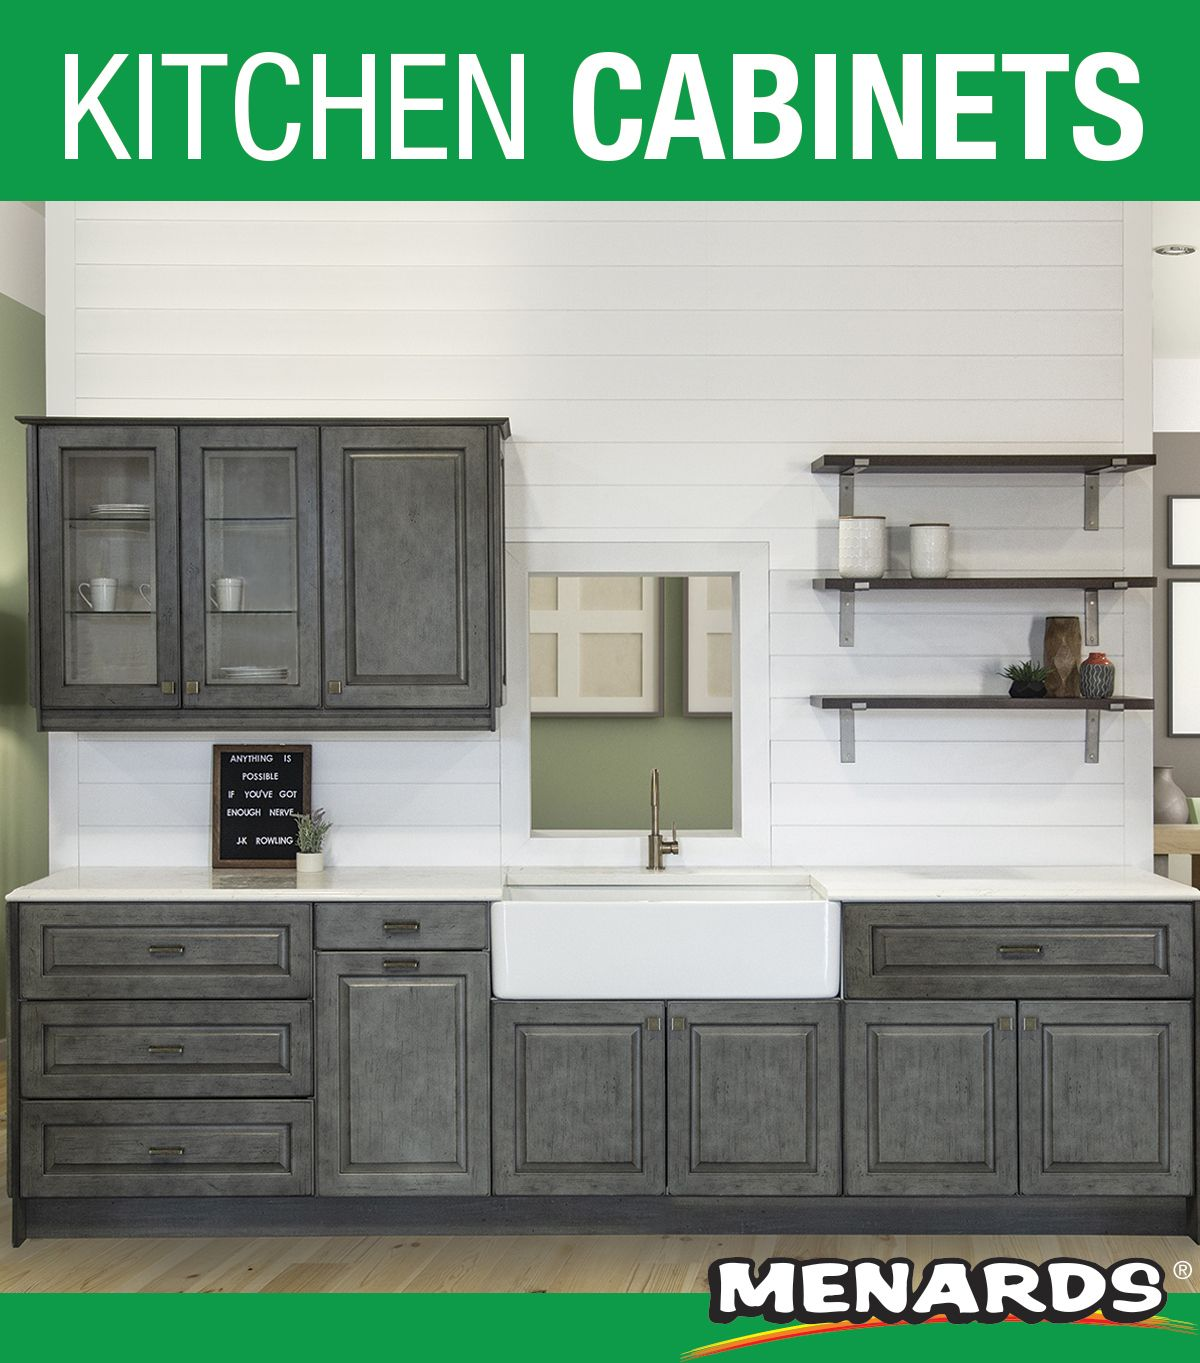 KlËarvŪe Cabinetry Äspet Hazel Galley Kitchen Kitchen Kitchen Design Cabinetry